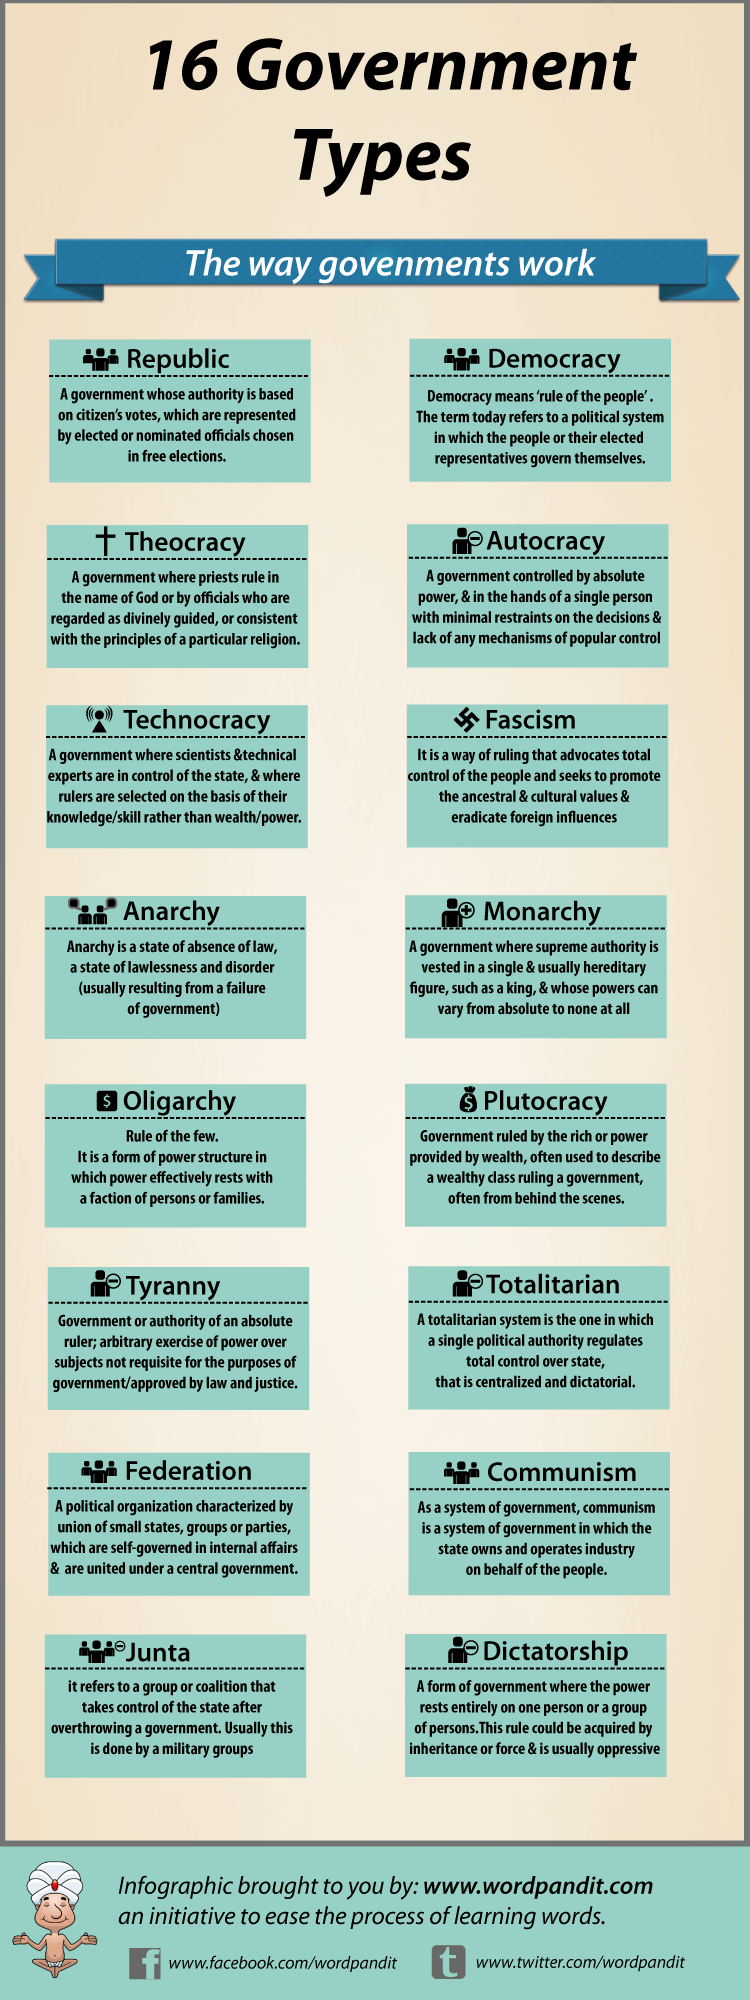 Types of Governments #infographic